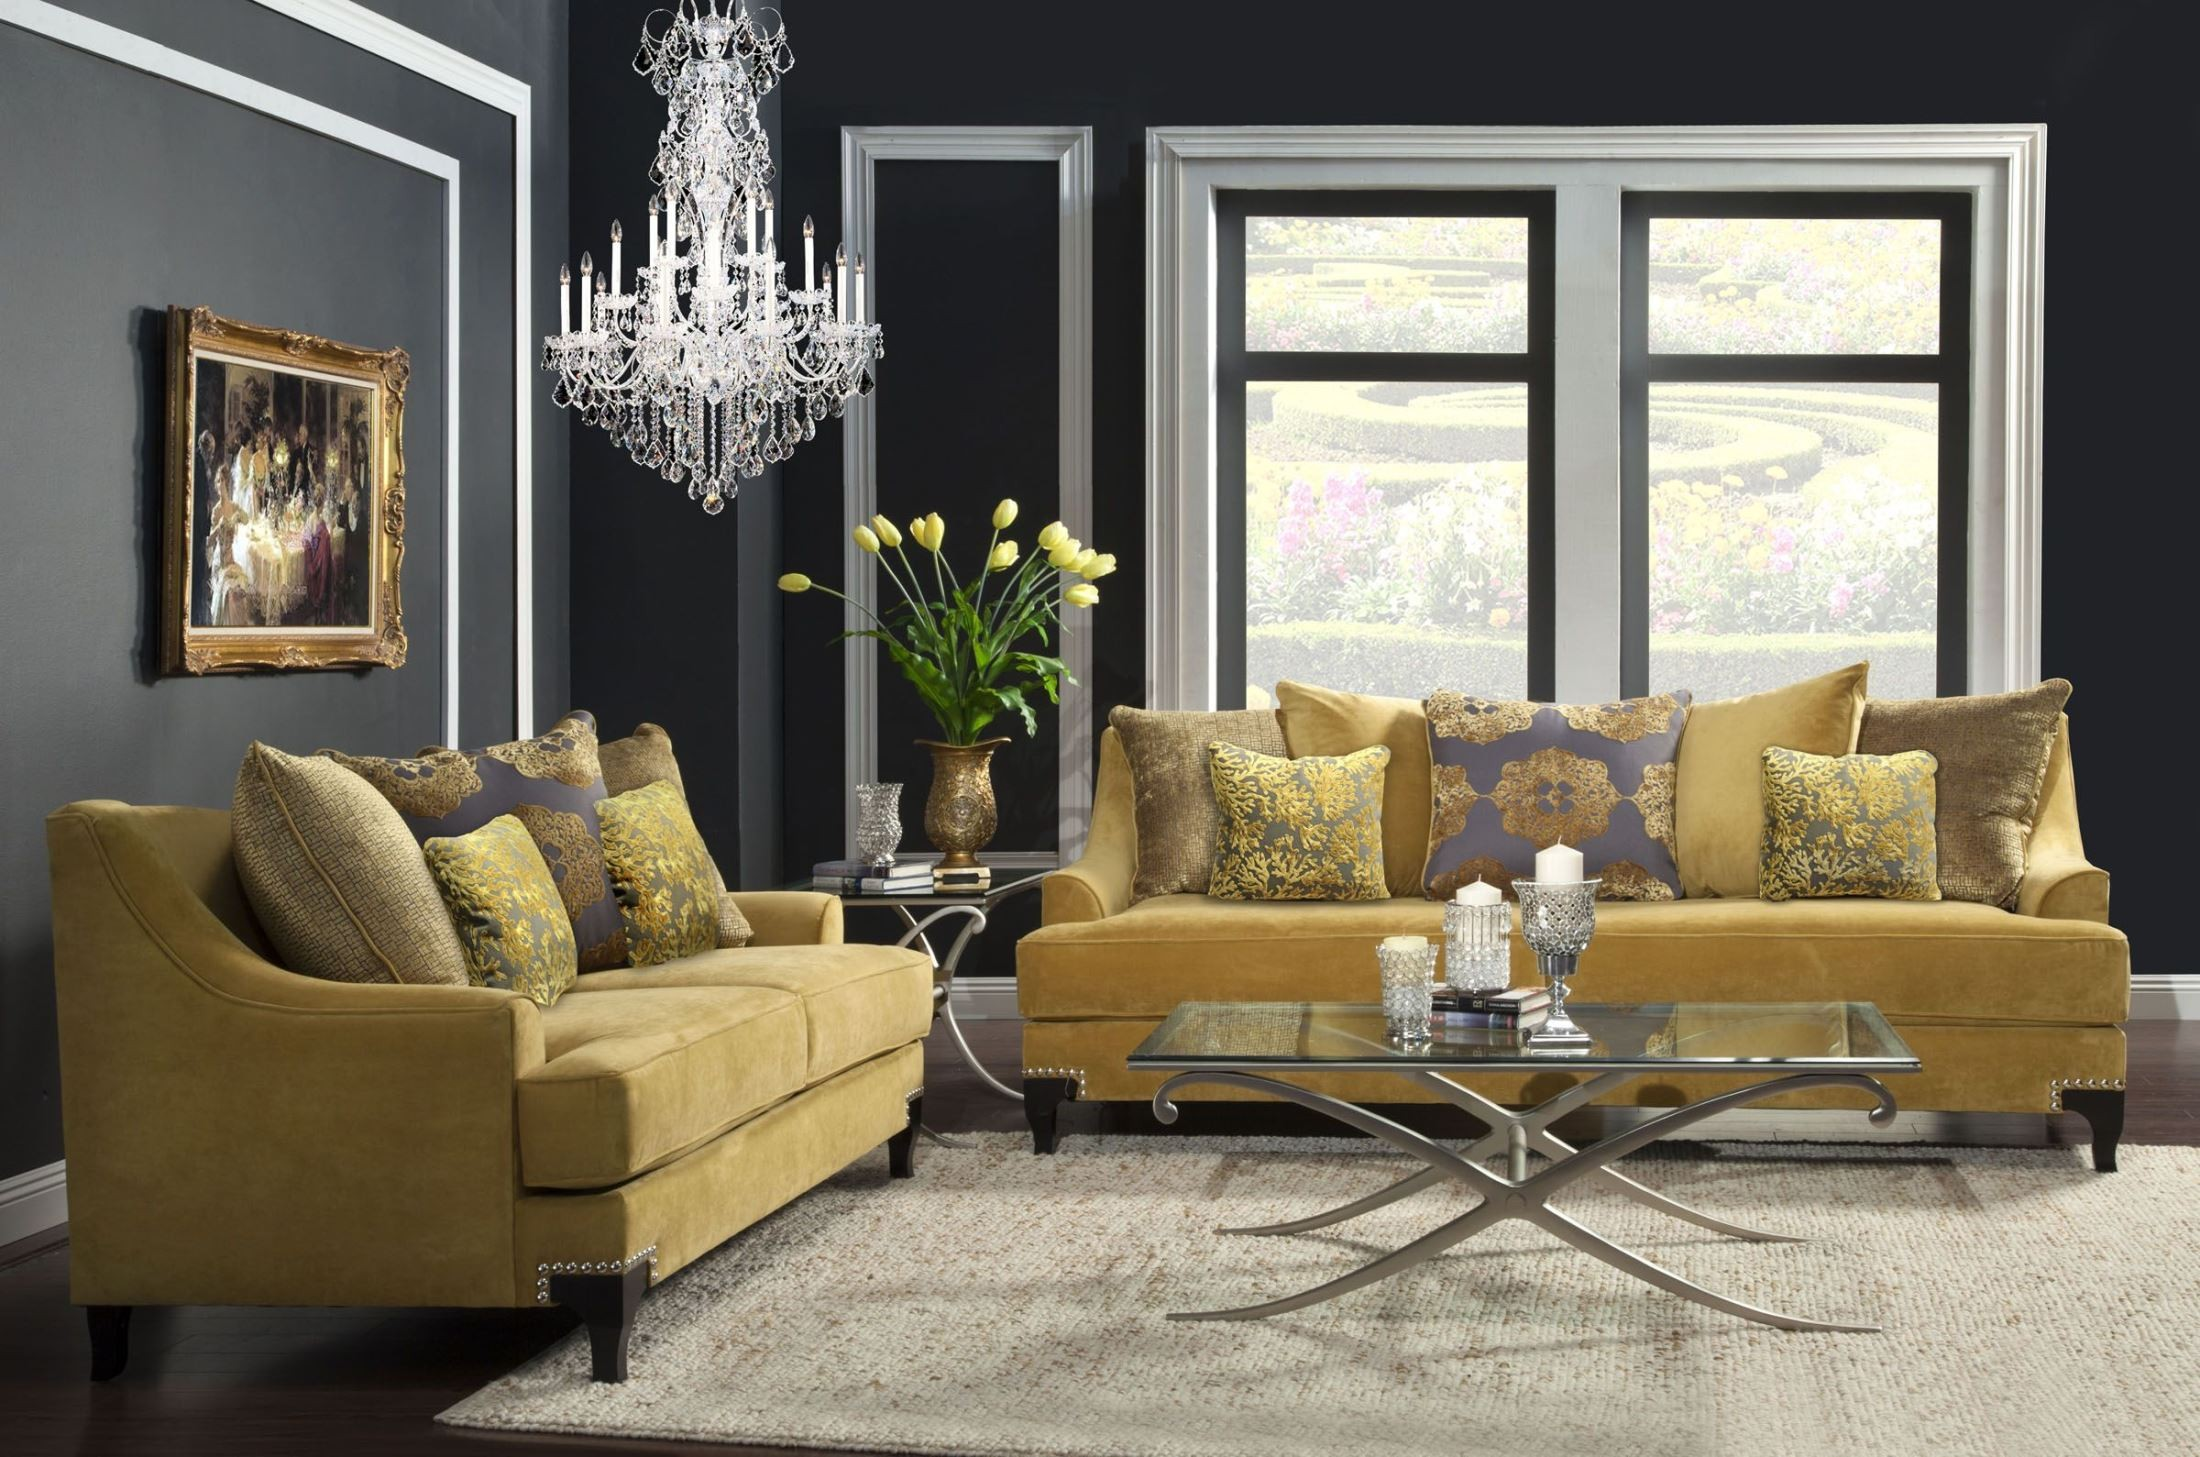 Viscontti gold living room set from furniture of america sm2201 sf coleman furniture Home furniture usa nj